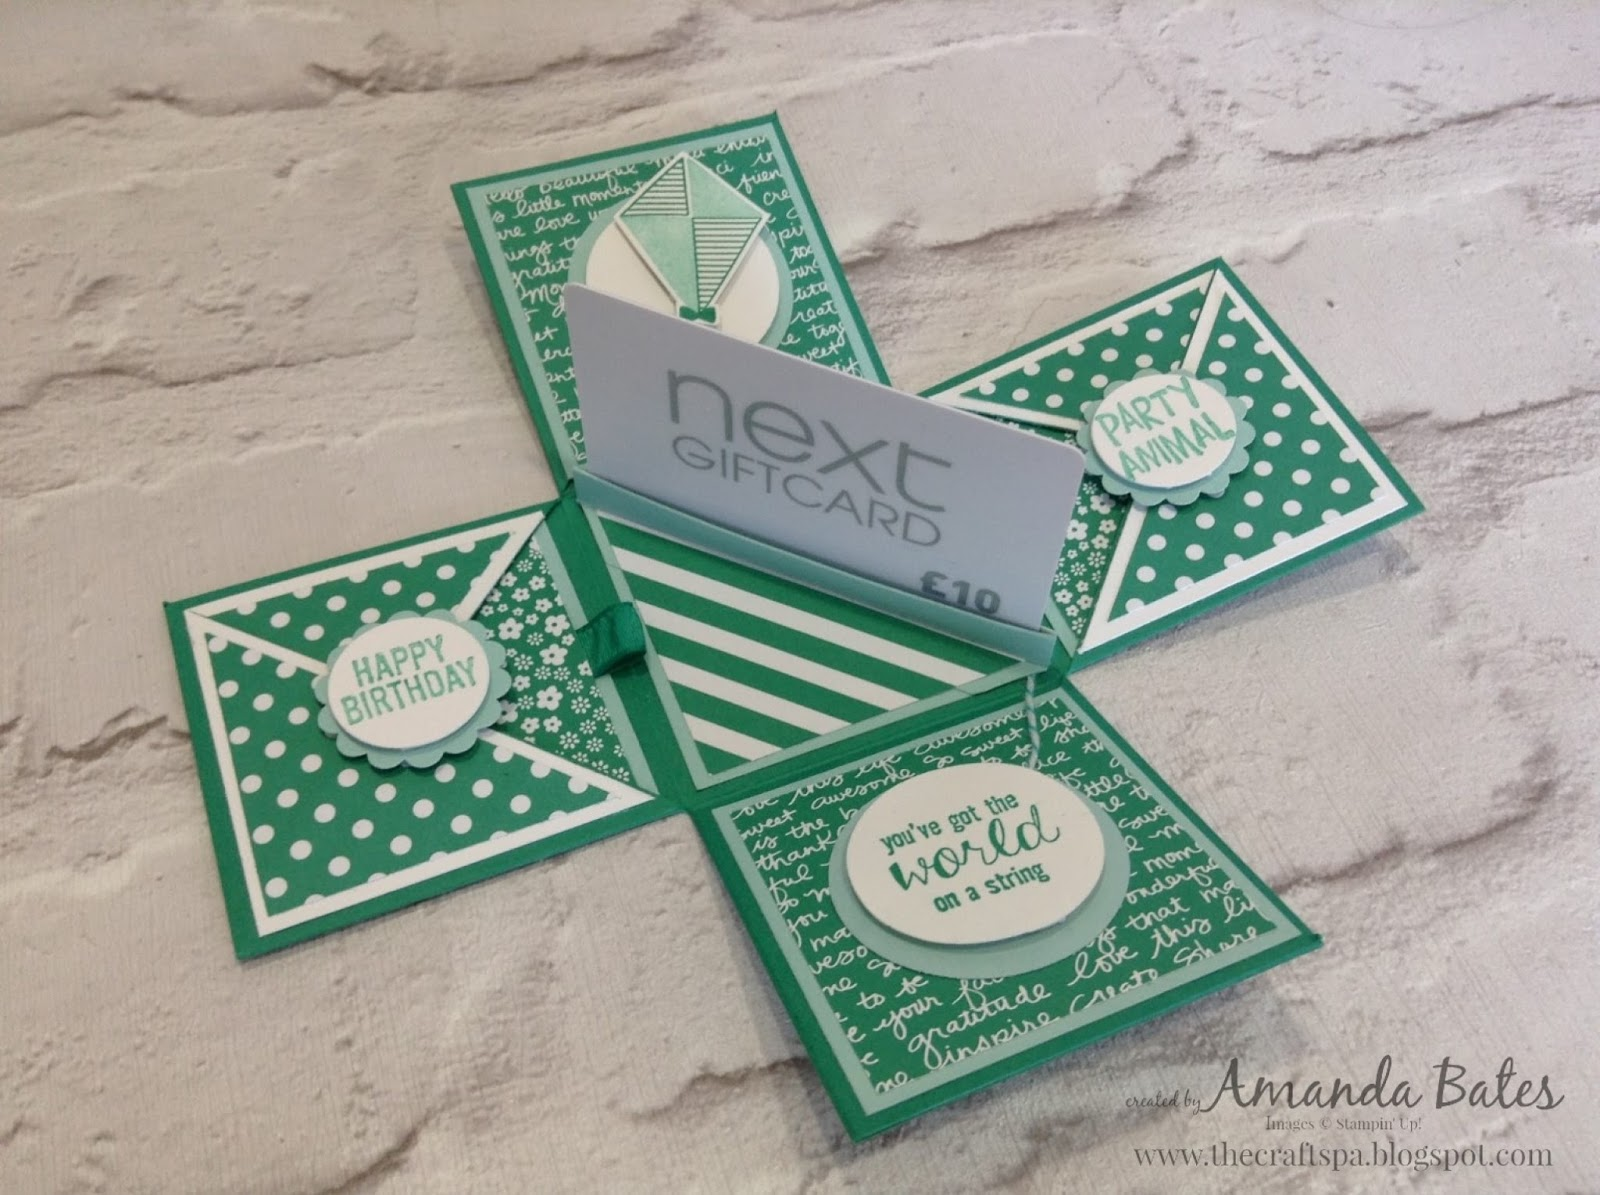 The craft spa stampin up uk independent demonstrator emerald card emerald envy 21cm square card whisper white 65cm square x4 card pool party 65cm square x3 paper 6cm square polka dots x4 script x2 solutioingenieria Gallery